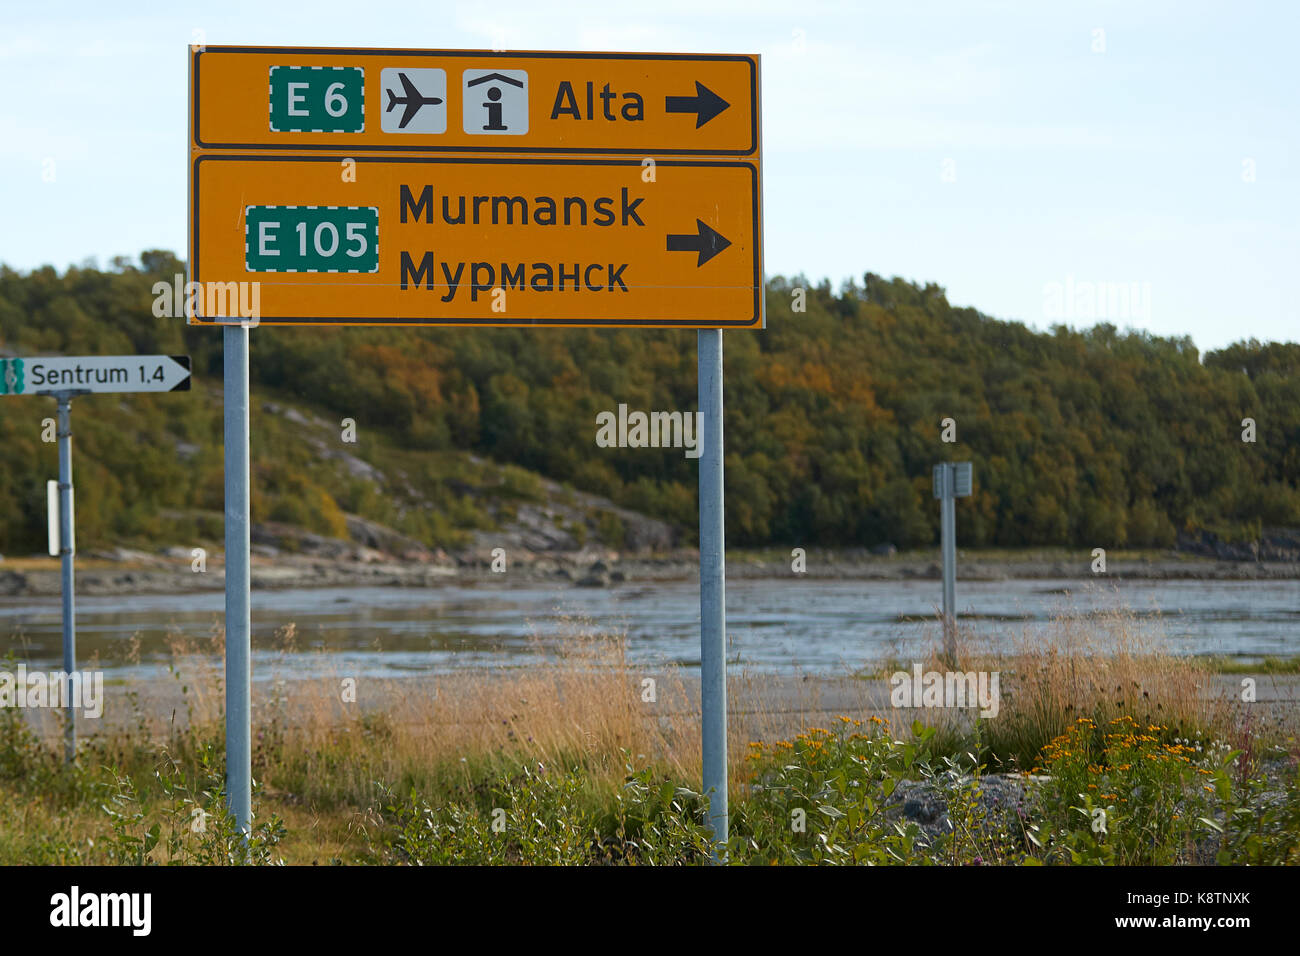 Norwegian Road Sign In Both The Latin And Cyrillic Alphabet, With Directions To Murmansk. - Stock Image